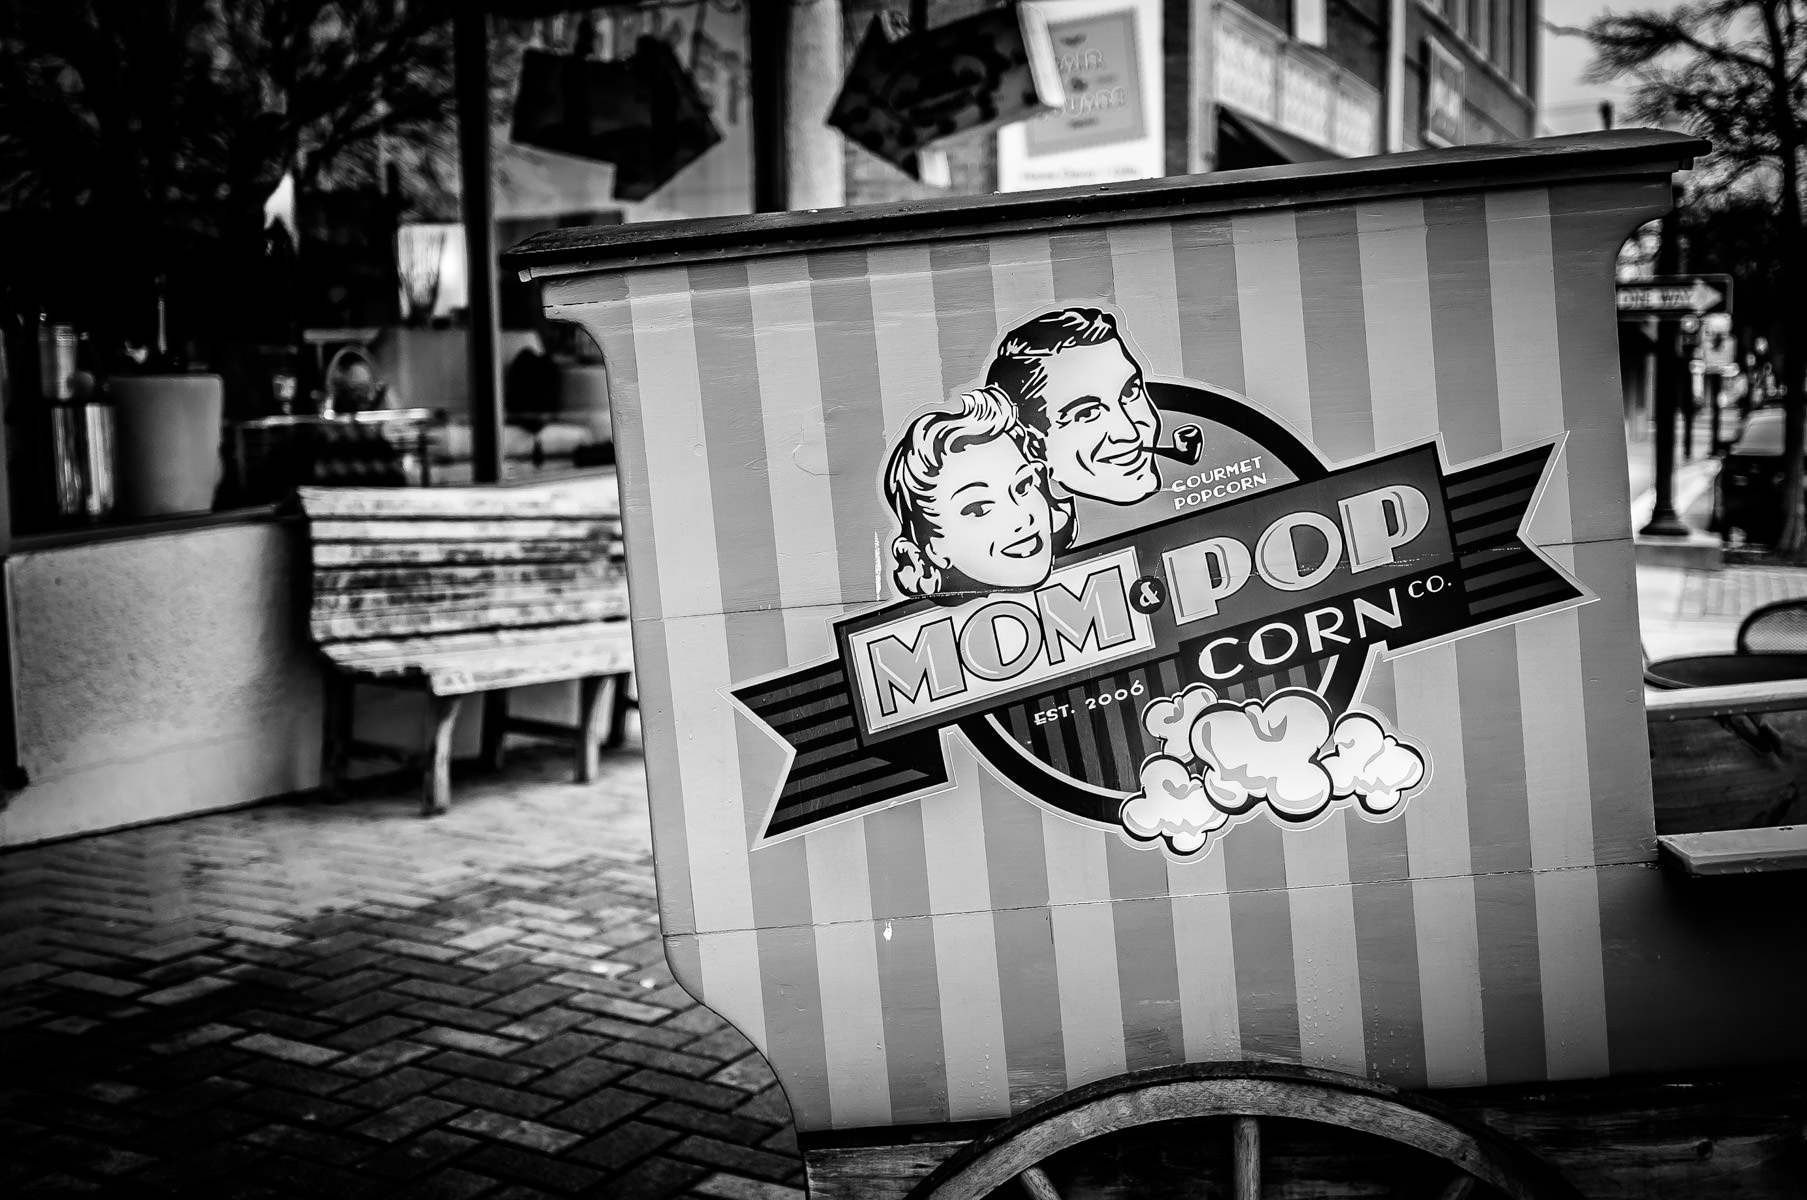 A cart advertising a local specialty popcorn shop in Downtown McKinney, Texas.